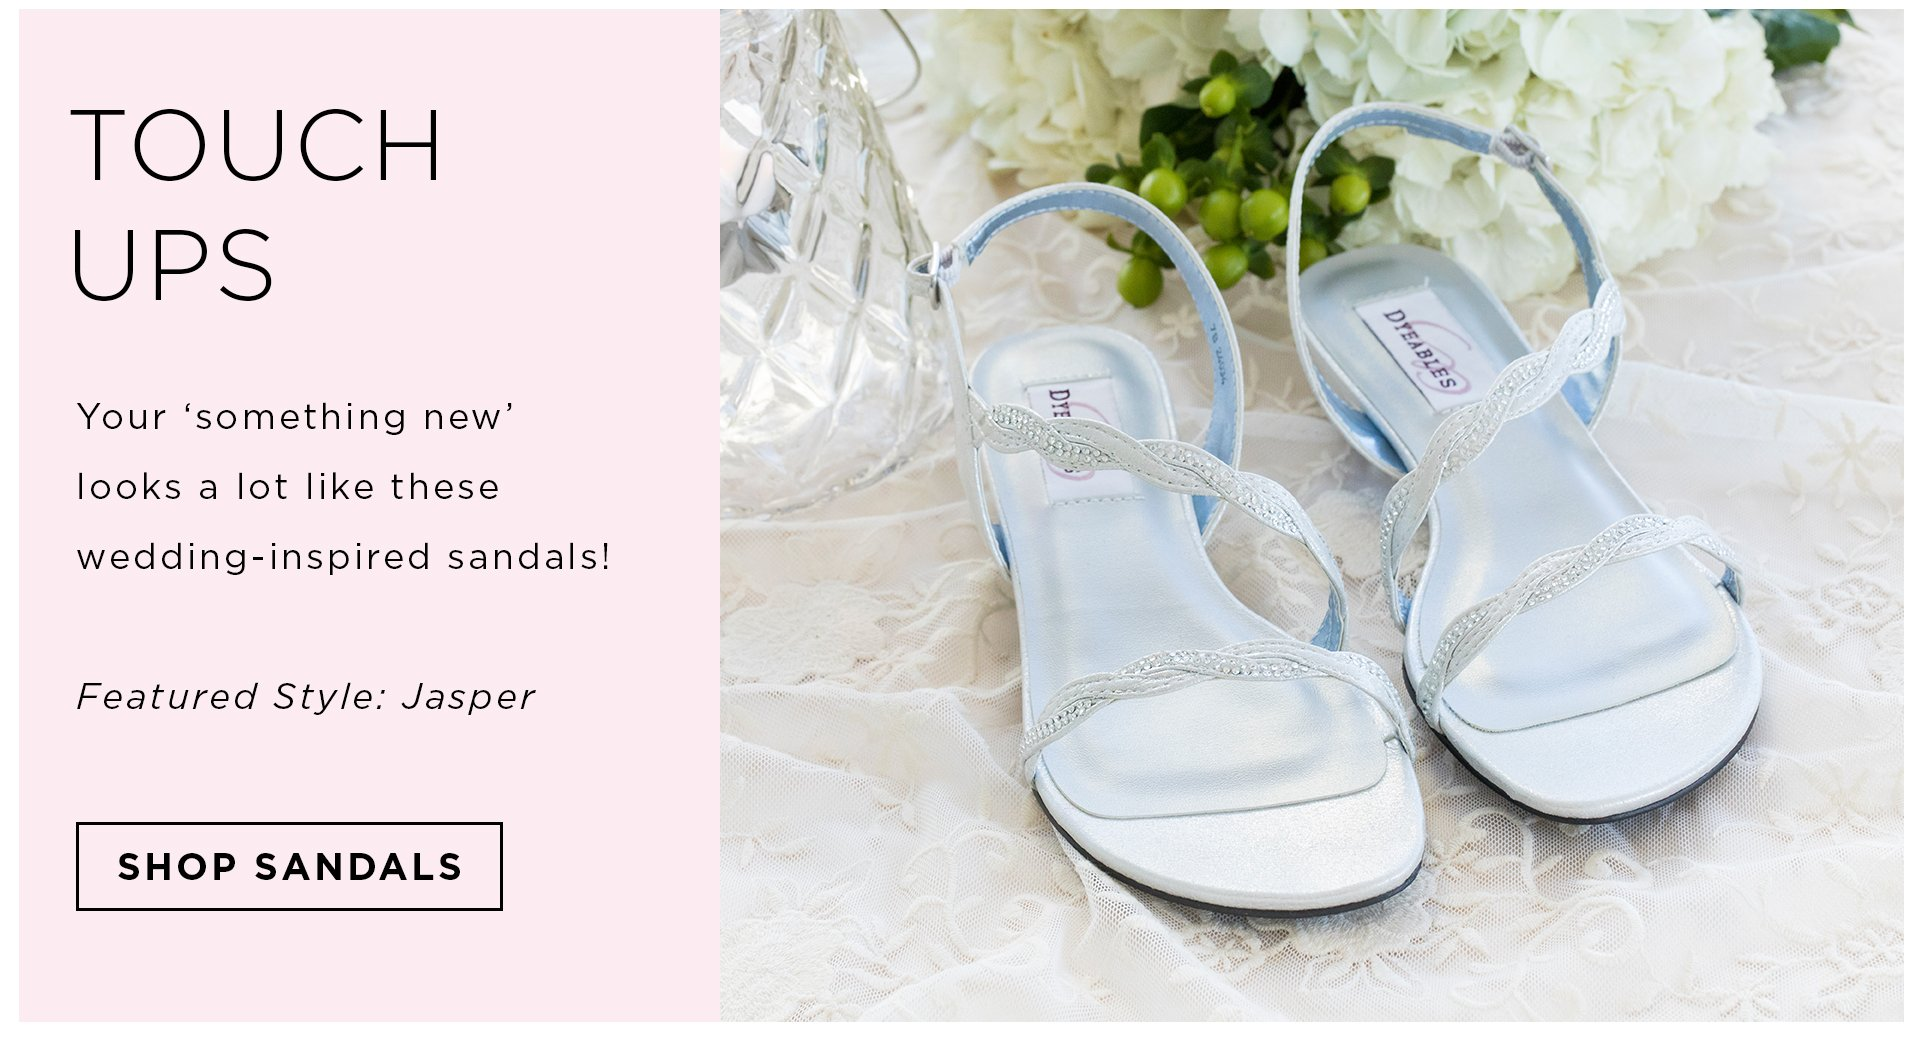 Wedding shoes bridal flats sandals heels more zappos touch ups shop all wedding footwear junglespirit Image collections